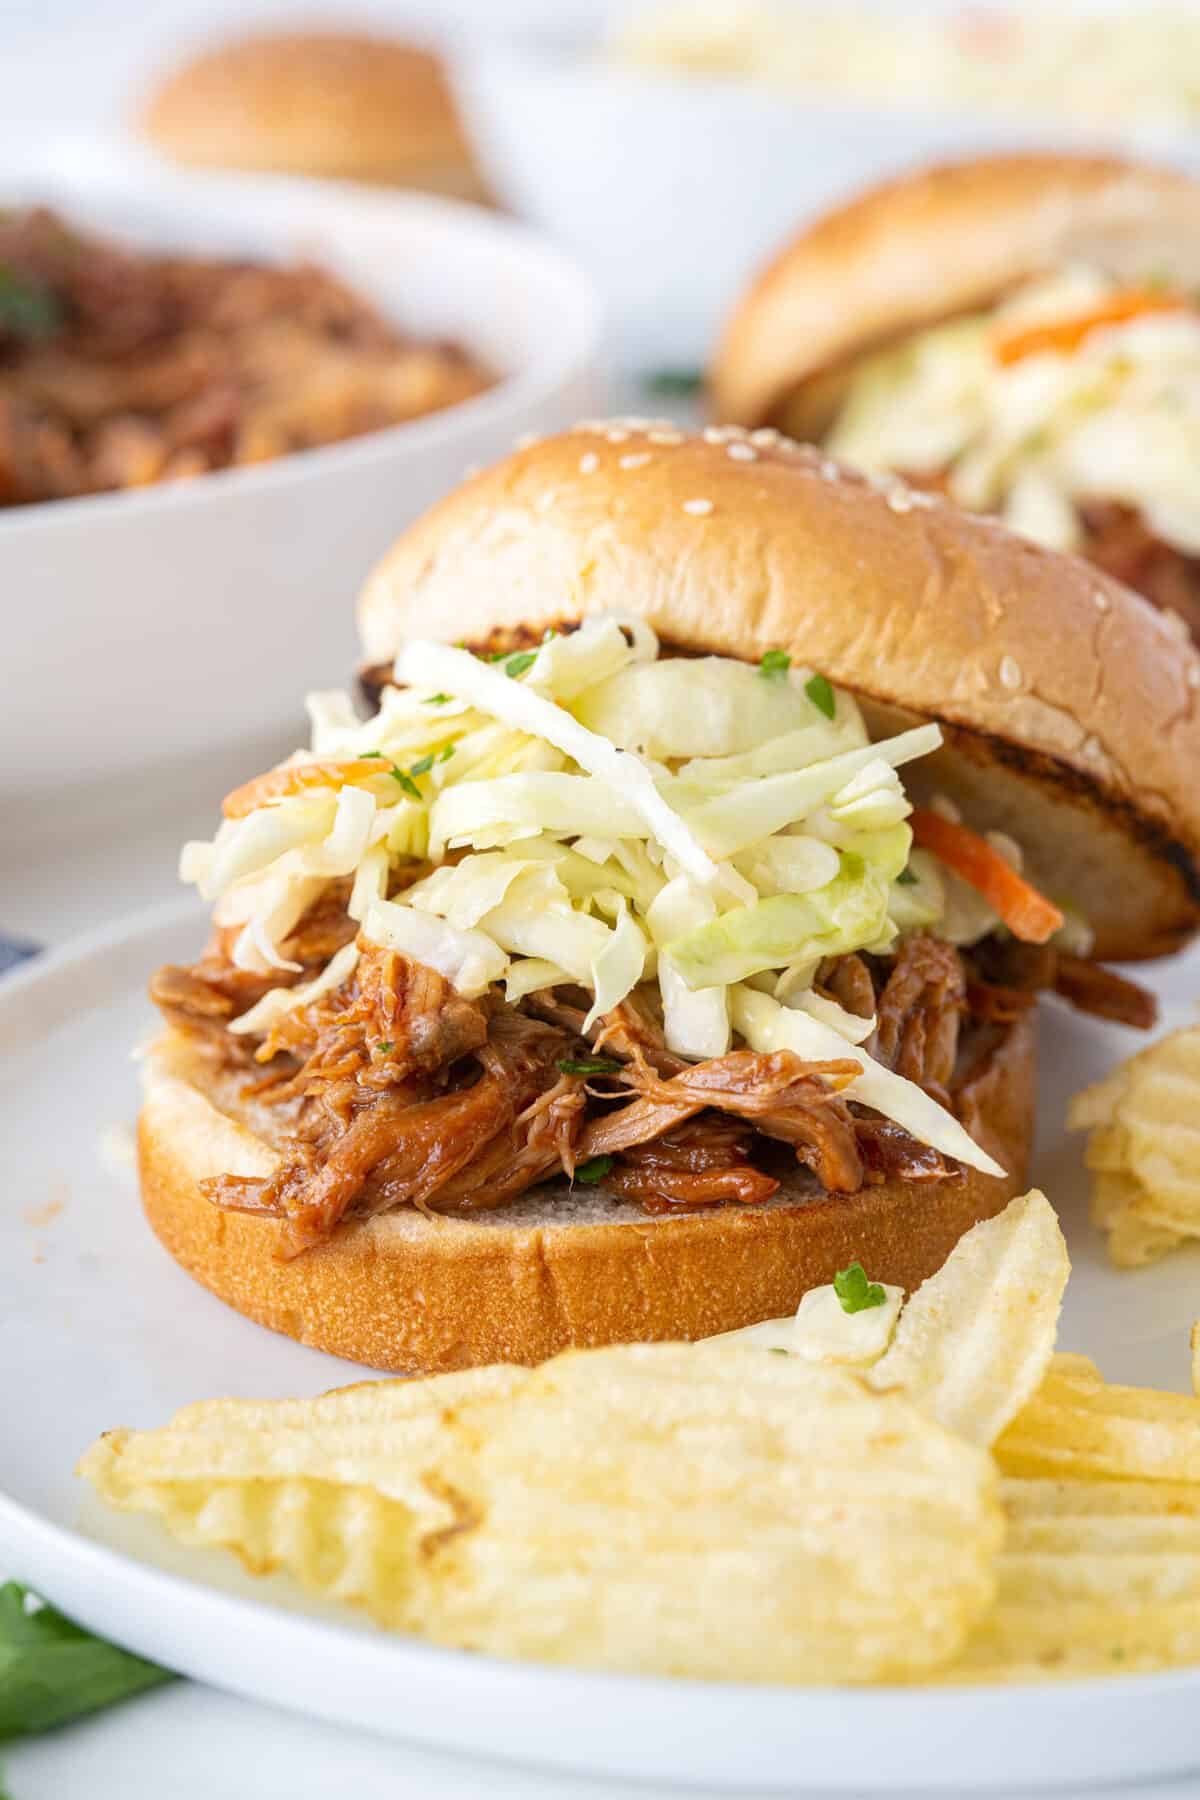 close up of a pulled pork sandwich on a white plate